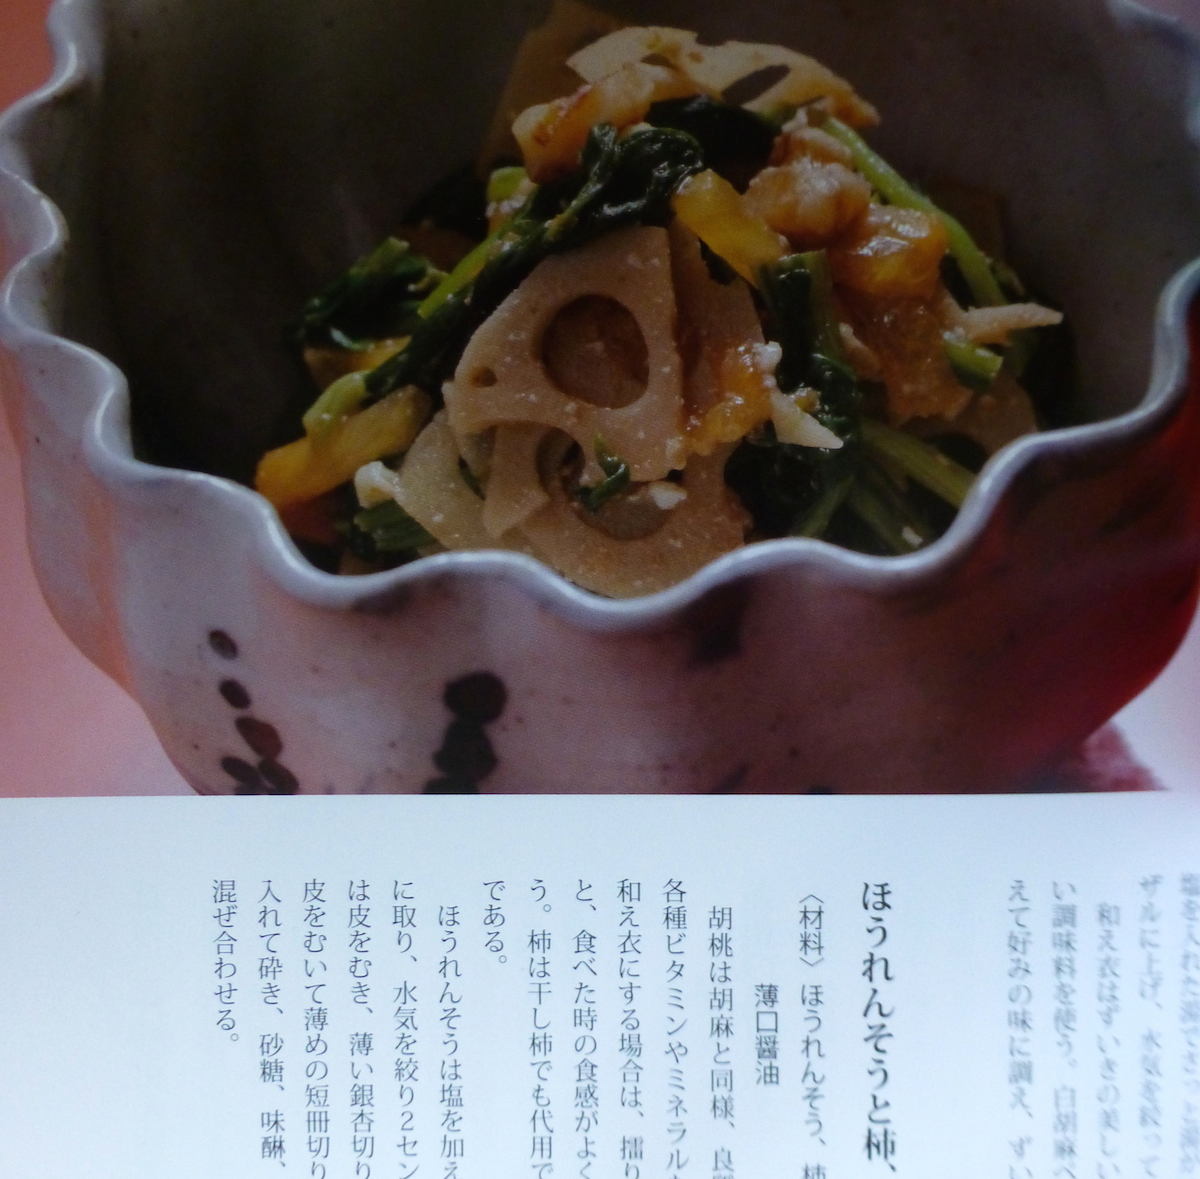 Page from the zen temple cookbook